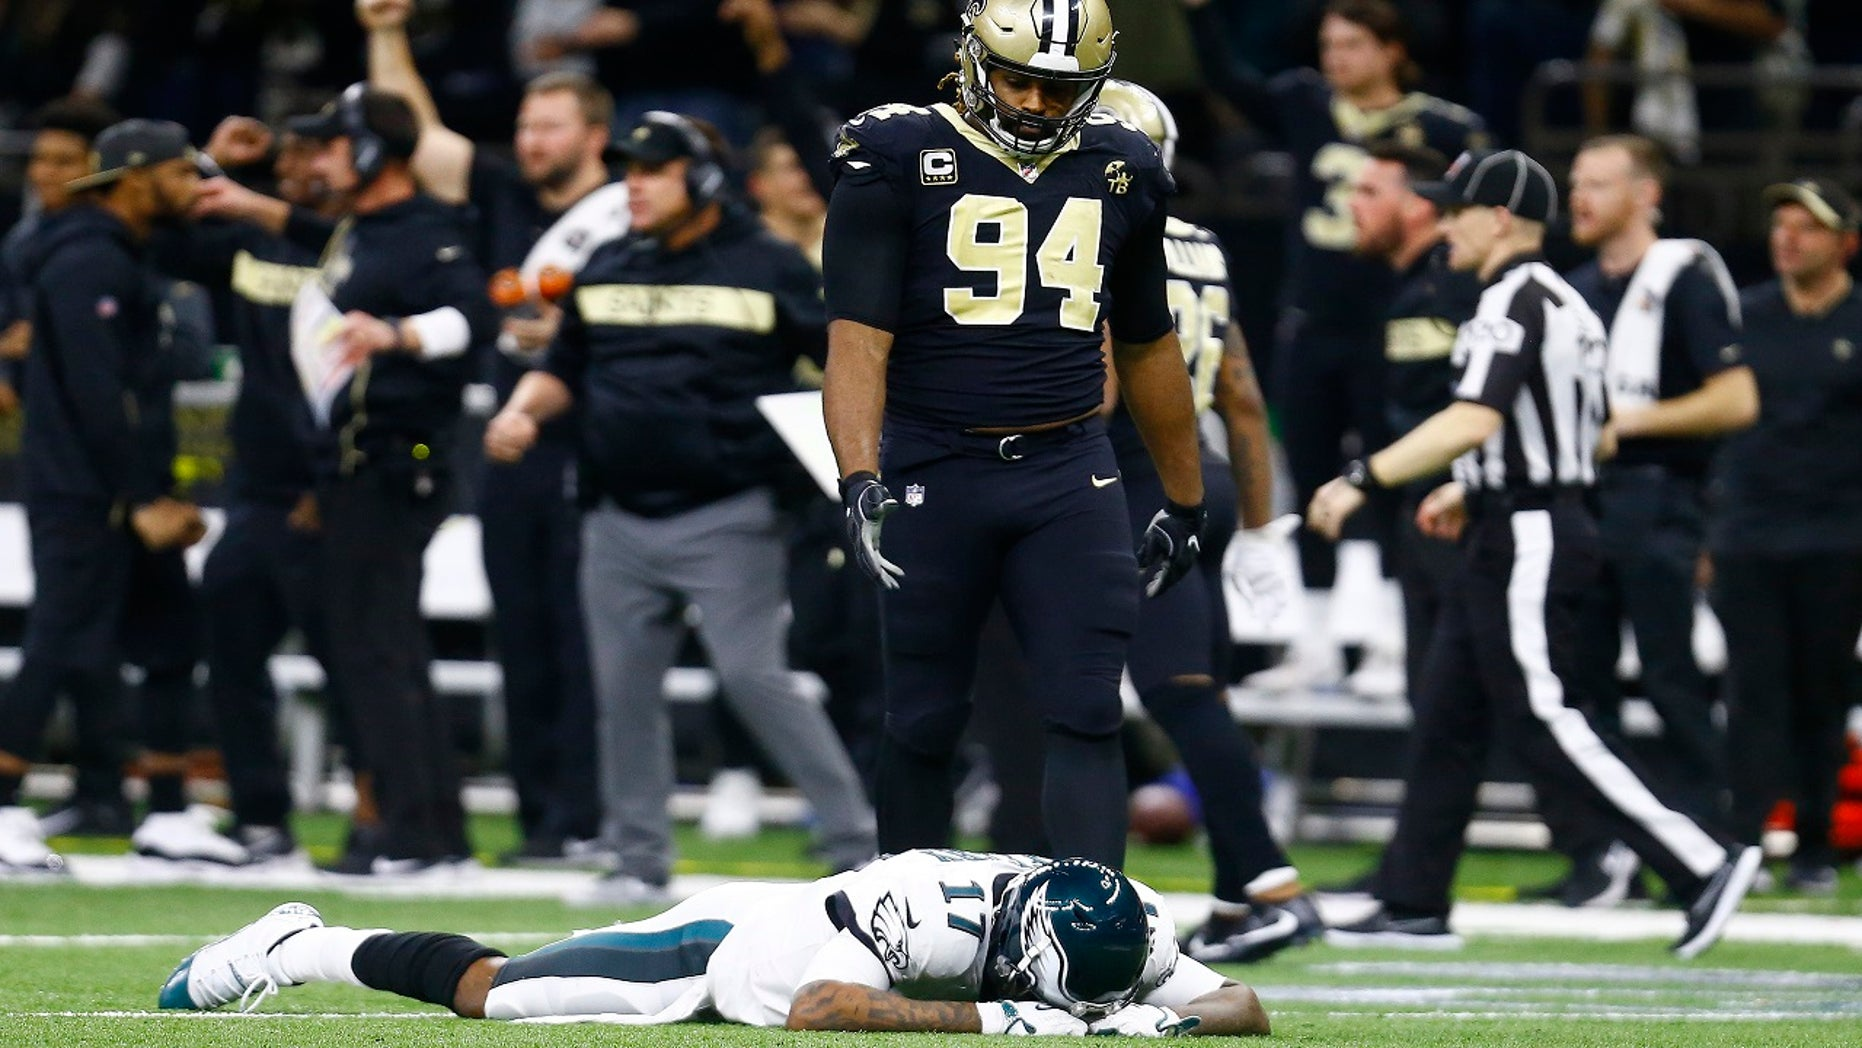 Philadelphia Eagles wide receiver Alshon Jeffery (17) lies on the turf in front of New Orleans Saints defensive end Cameron Jordan (94) after the Saints intercepted a pass in the second half of an NFL divisional playoff football game in New Orleans, Sunday, Jan. 13, 2019. The Saints won 20-14.(Associated Press)